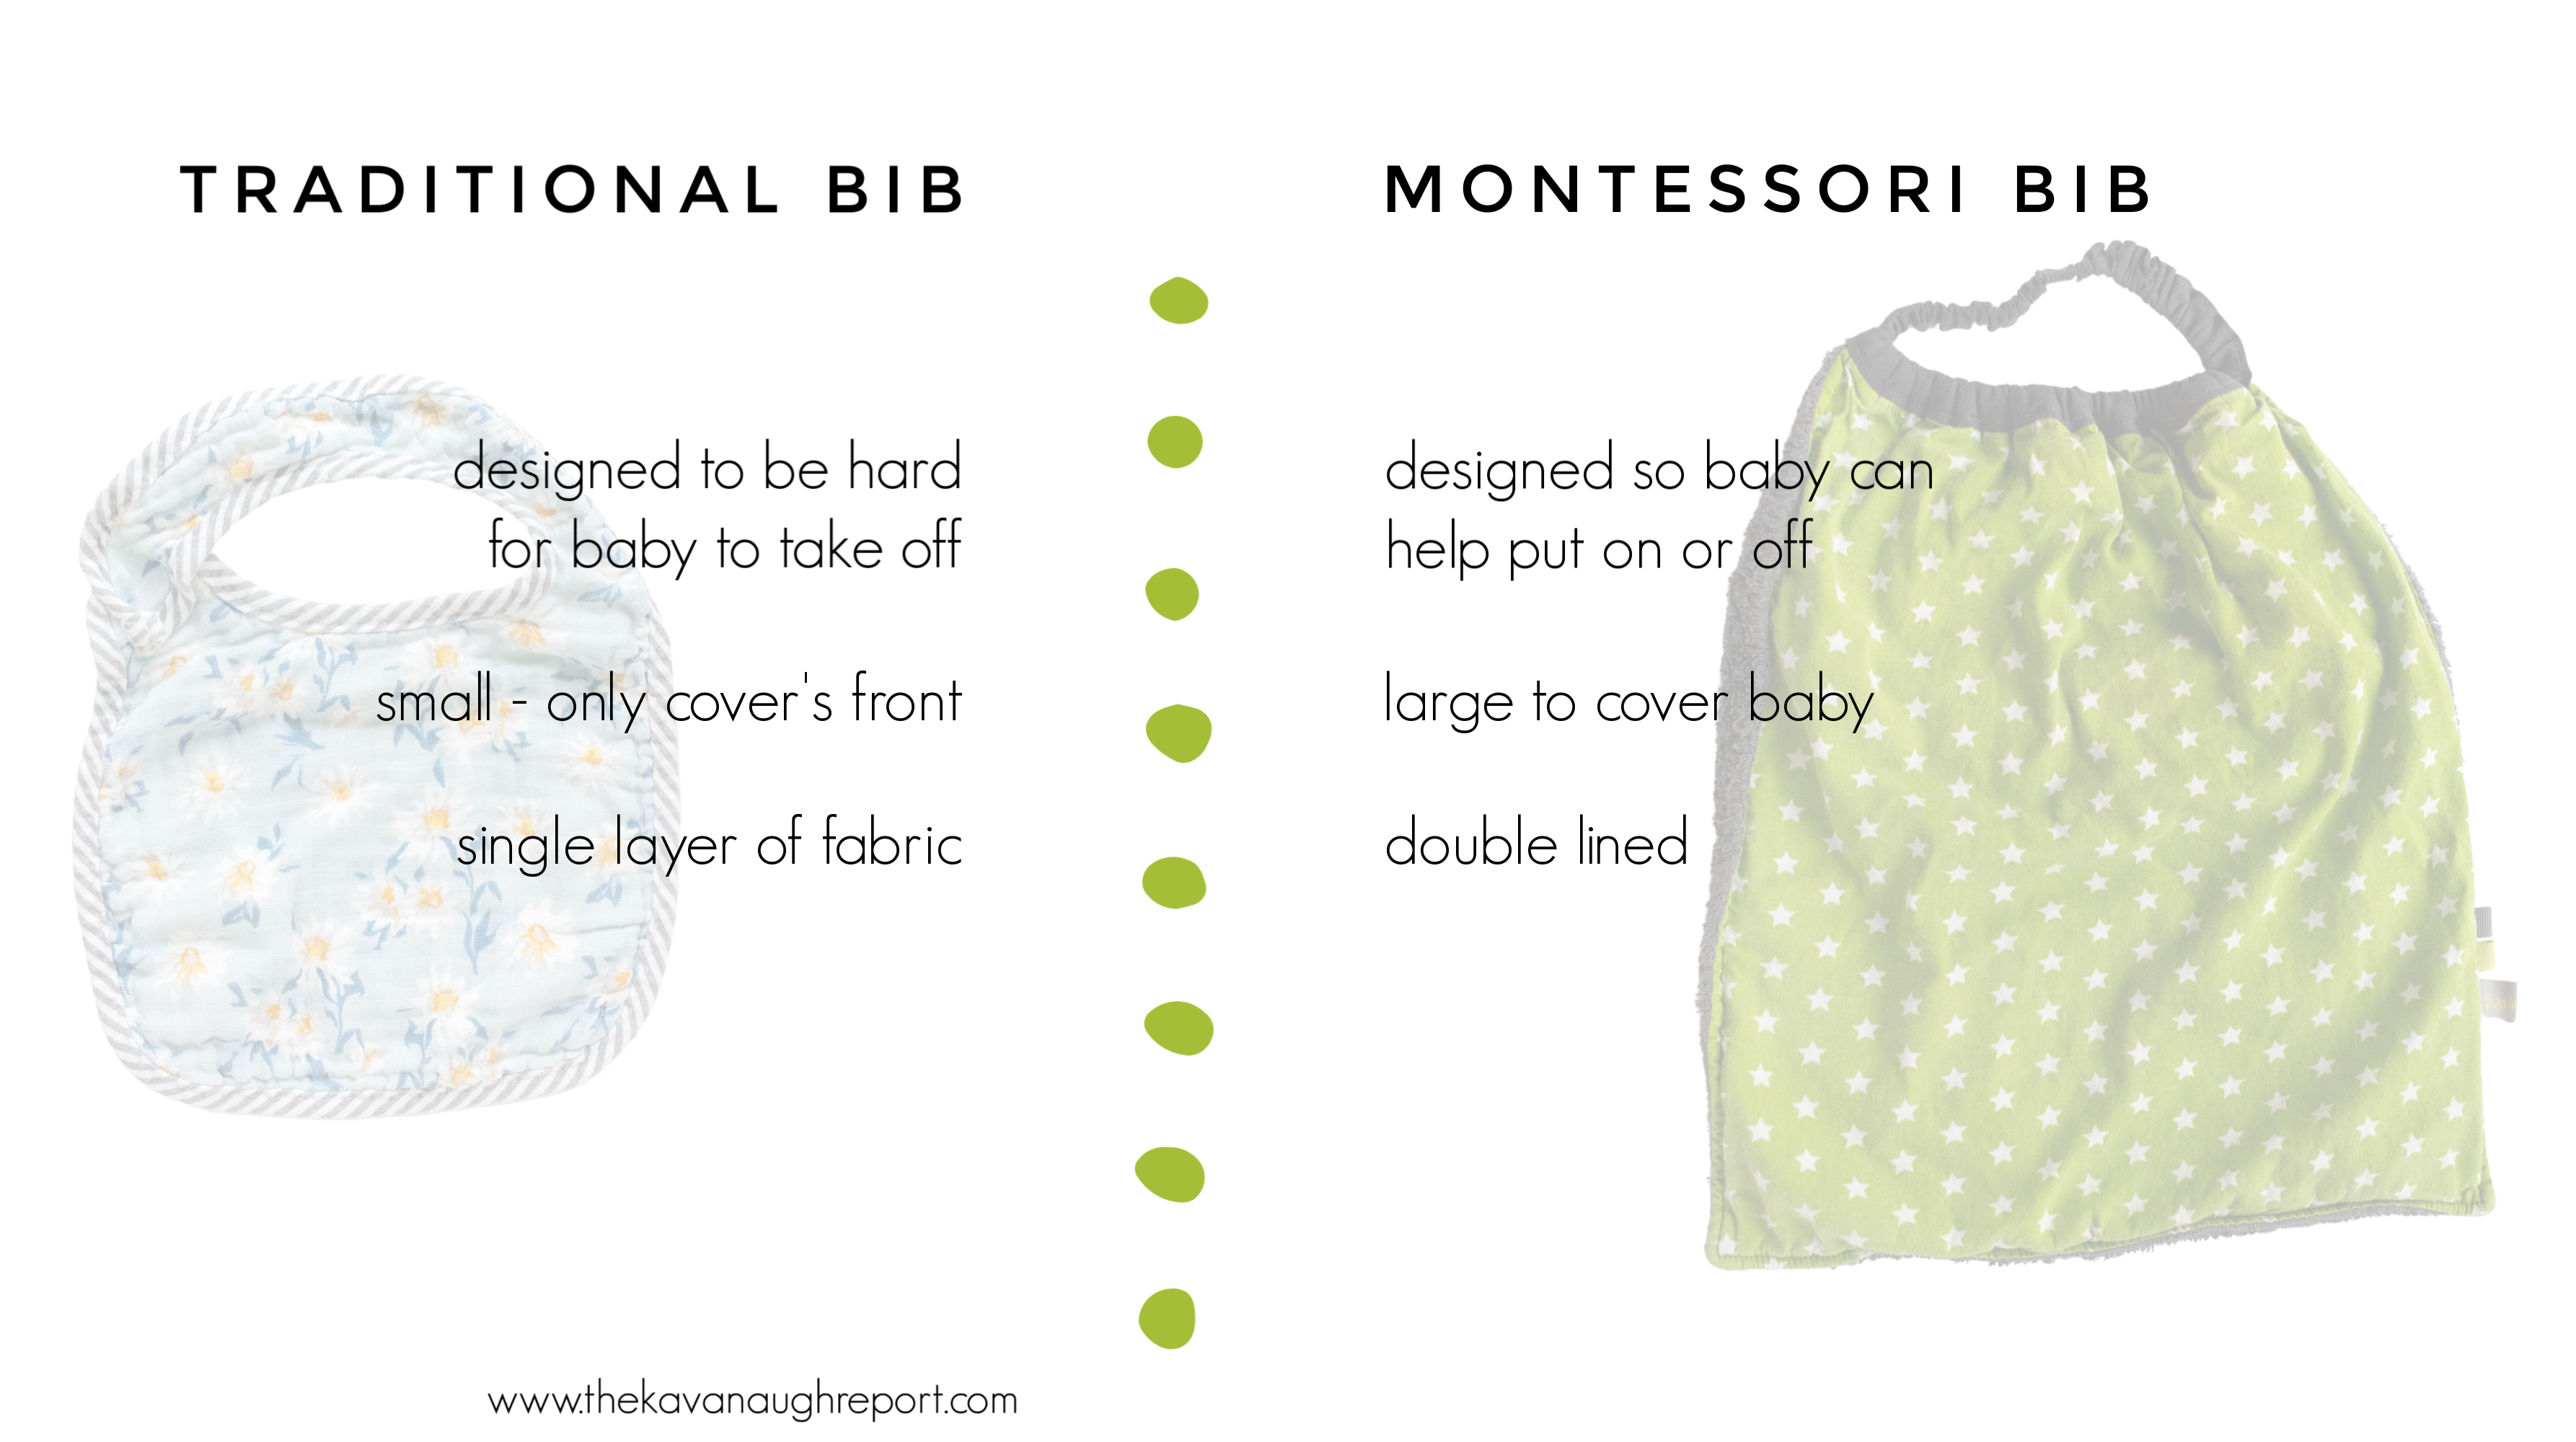 A look at the difference between Montessori baby bibs and traditional bibs and why Montessori bibs are so much better for babies and parents.